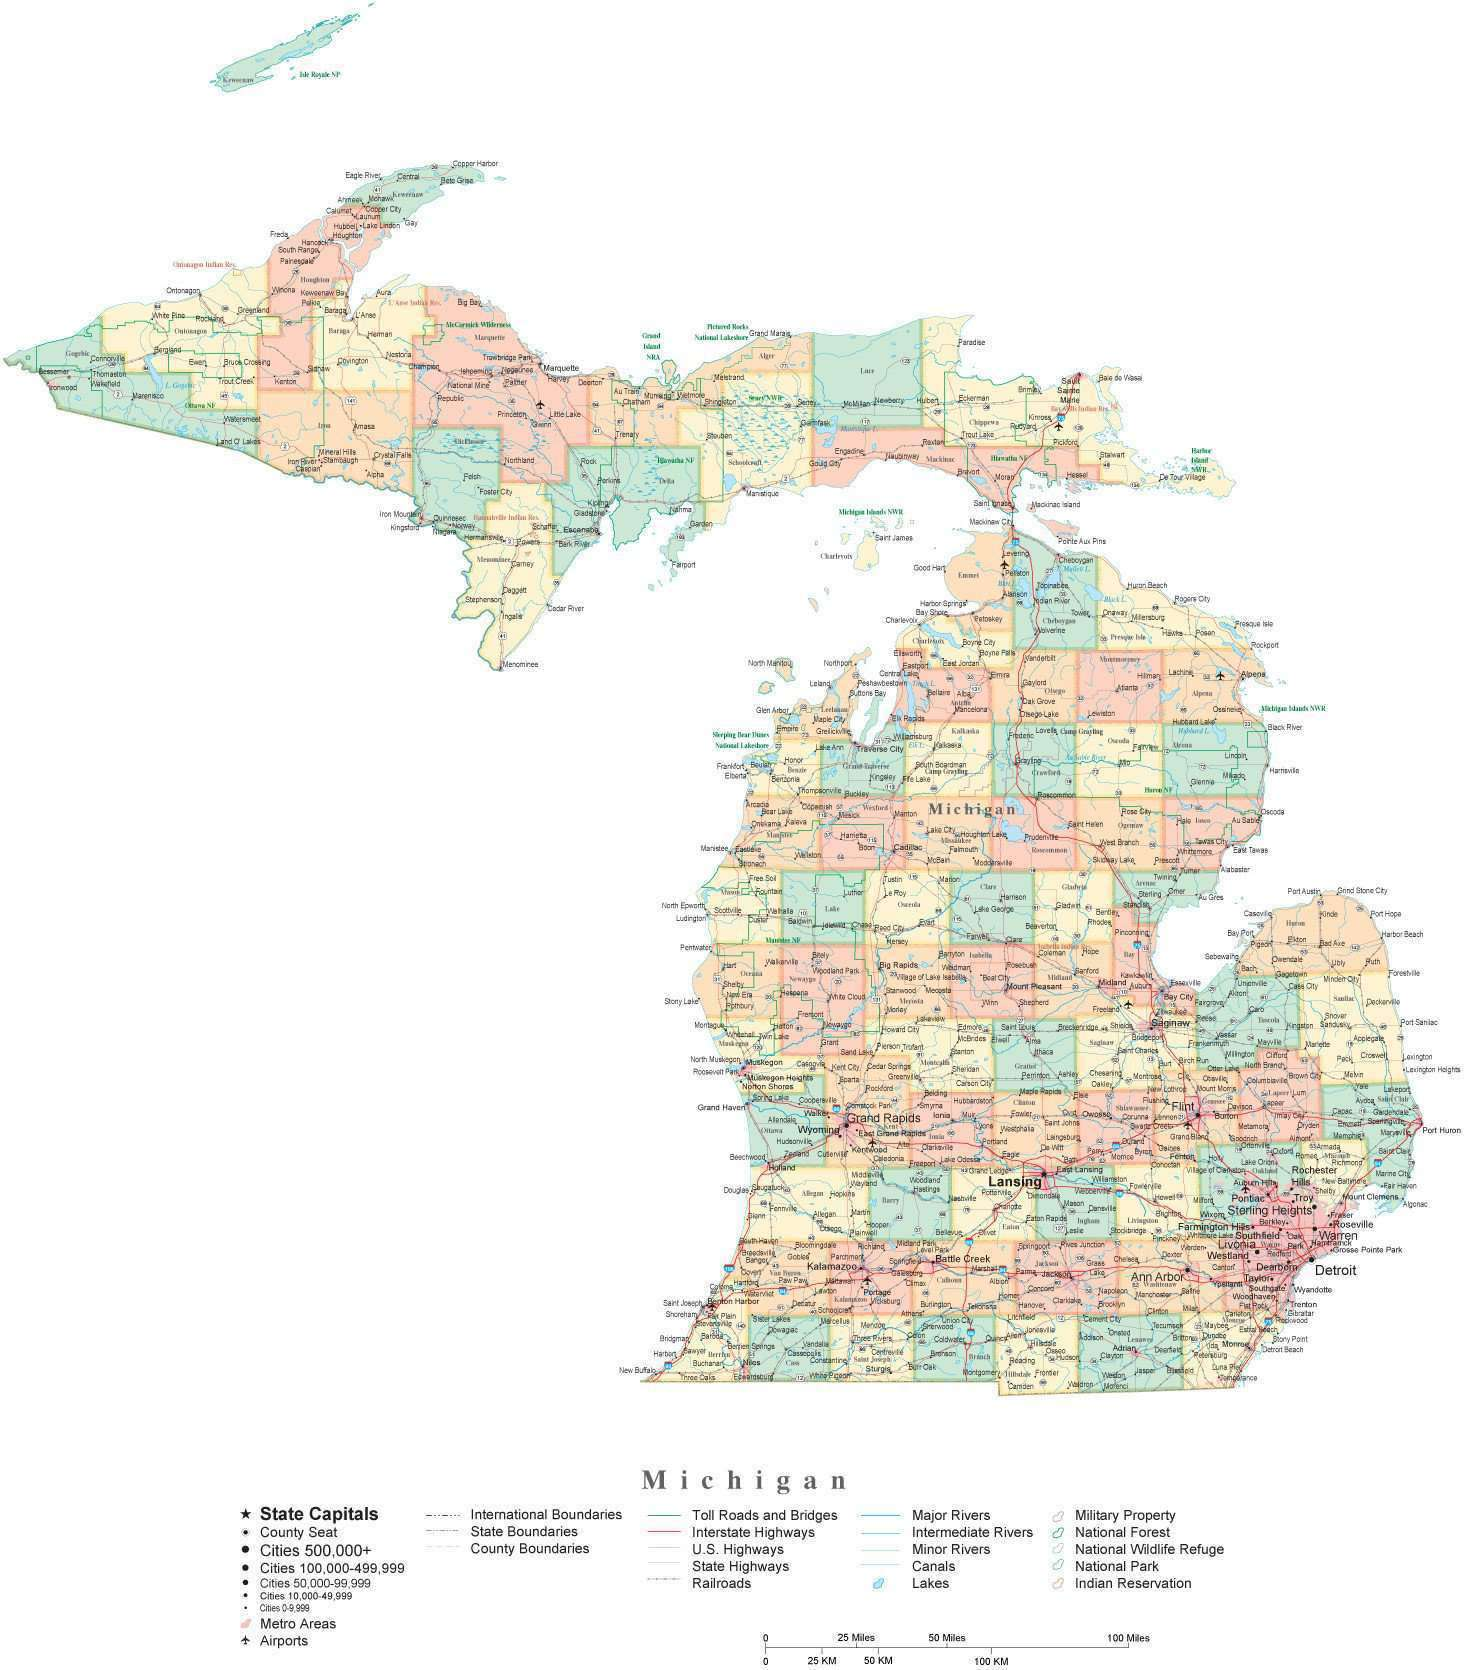 Detailed Michigan Cut-Out Style Digital Map with Counties, Cities, on map of wisconsin and minnesota, map of michigan states, map of cass city michigan, map of clarkston michigan, map of lansing michigan, map of michigan counties, map of central michigan, map of indiana and michigan, map of michigan highways, upper michigan map cities, map of ohio, map of south east michigan, map of michigan showing canton, map of michigan school districts, map of detroit, map of u p michigan, map of lake michigan, map of westland michigan, map of hudsonville michigan, map of jackson michigan,